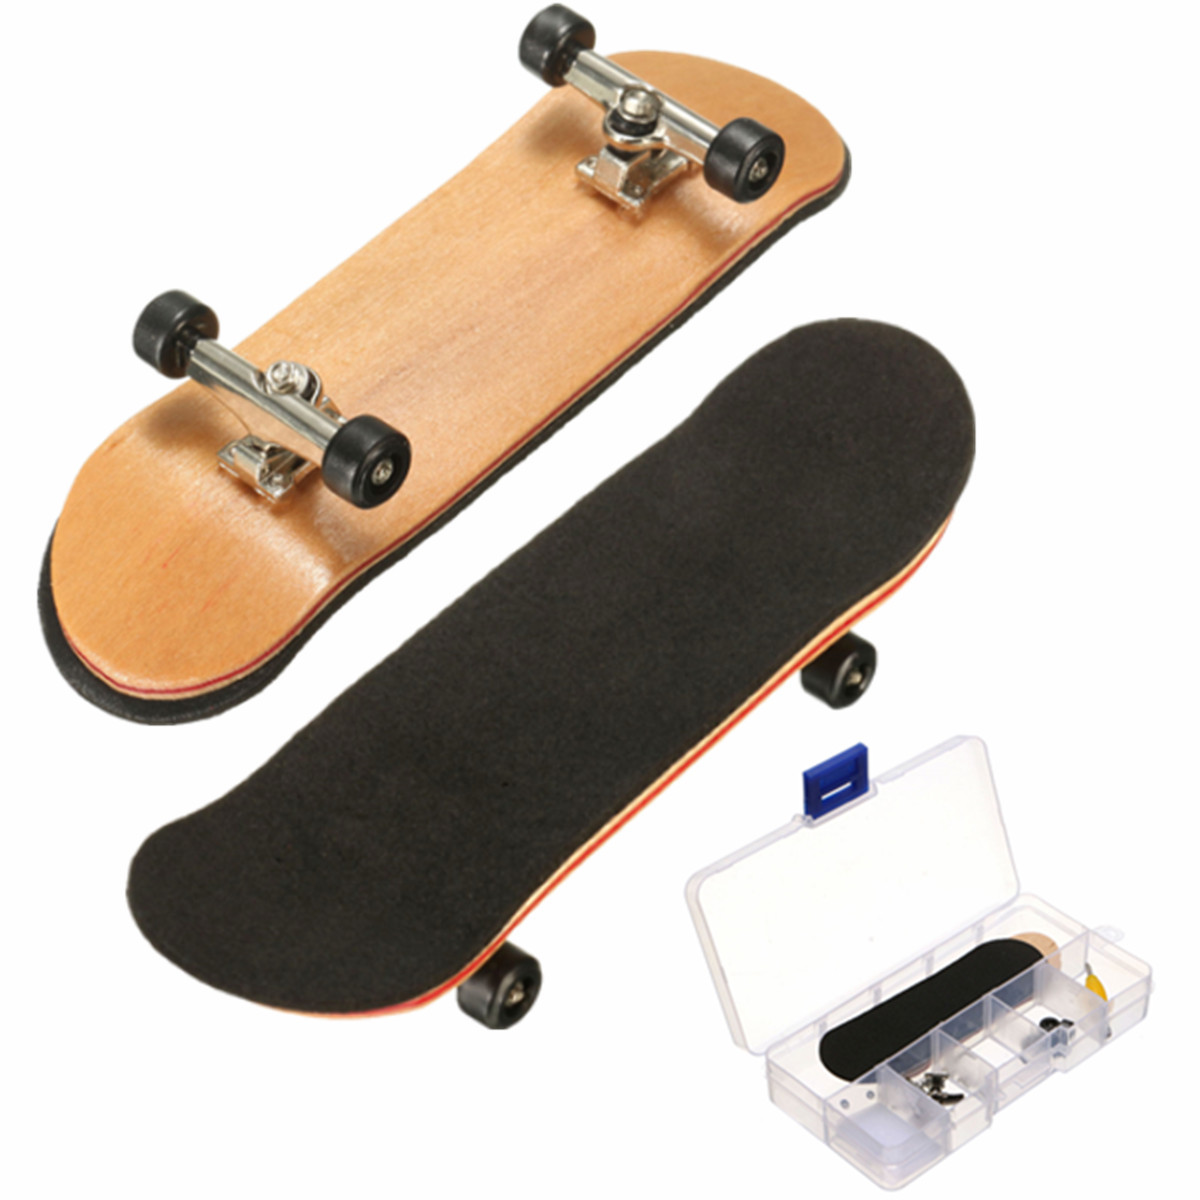 Maple Wooden FingerBoard mini finger boards Sports Skateboard Black Bearings Wheels Kids Game Gift 100mmx28mmx15mm